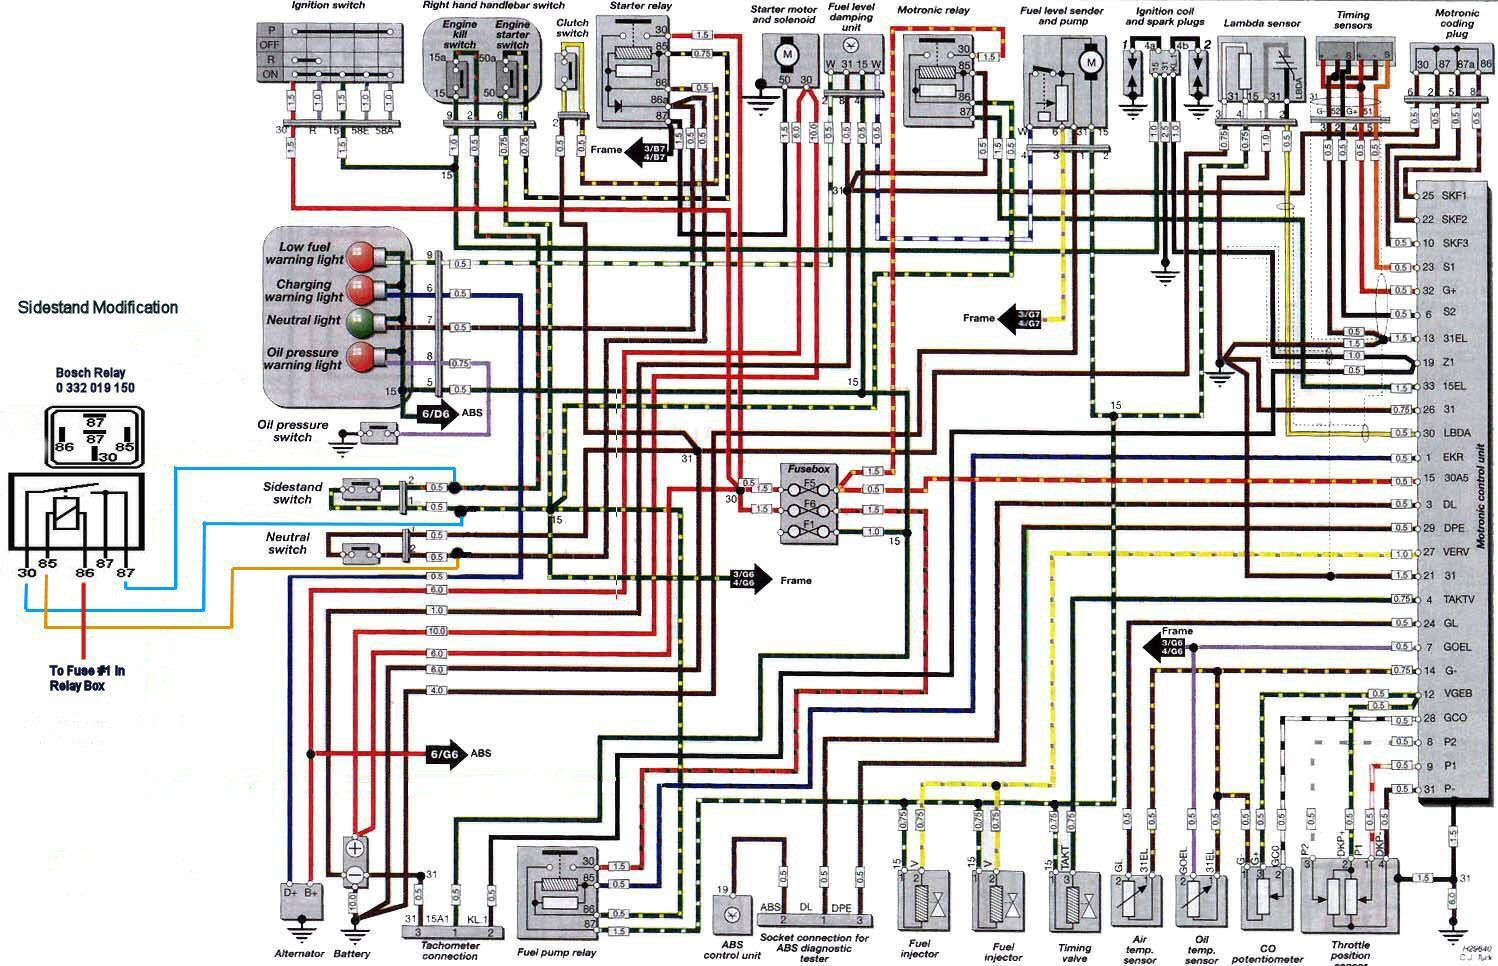 cfa26548fff674929dbaca6a9b06c2b3 bmw r1150r electrical wiring diagram 1 bmv pinterest bmw r100rs gauge wiring diagram at creativeand.co